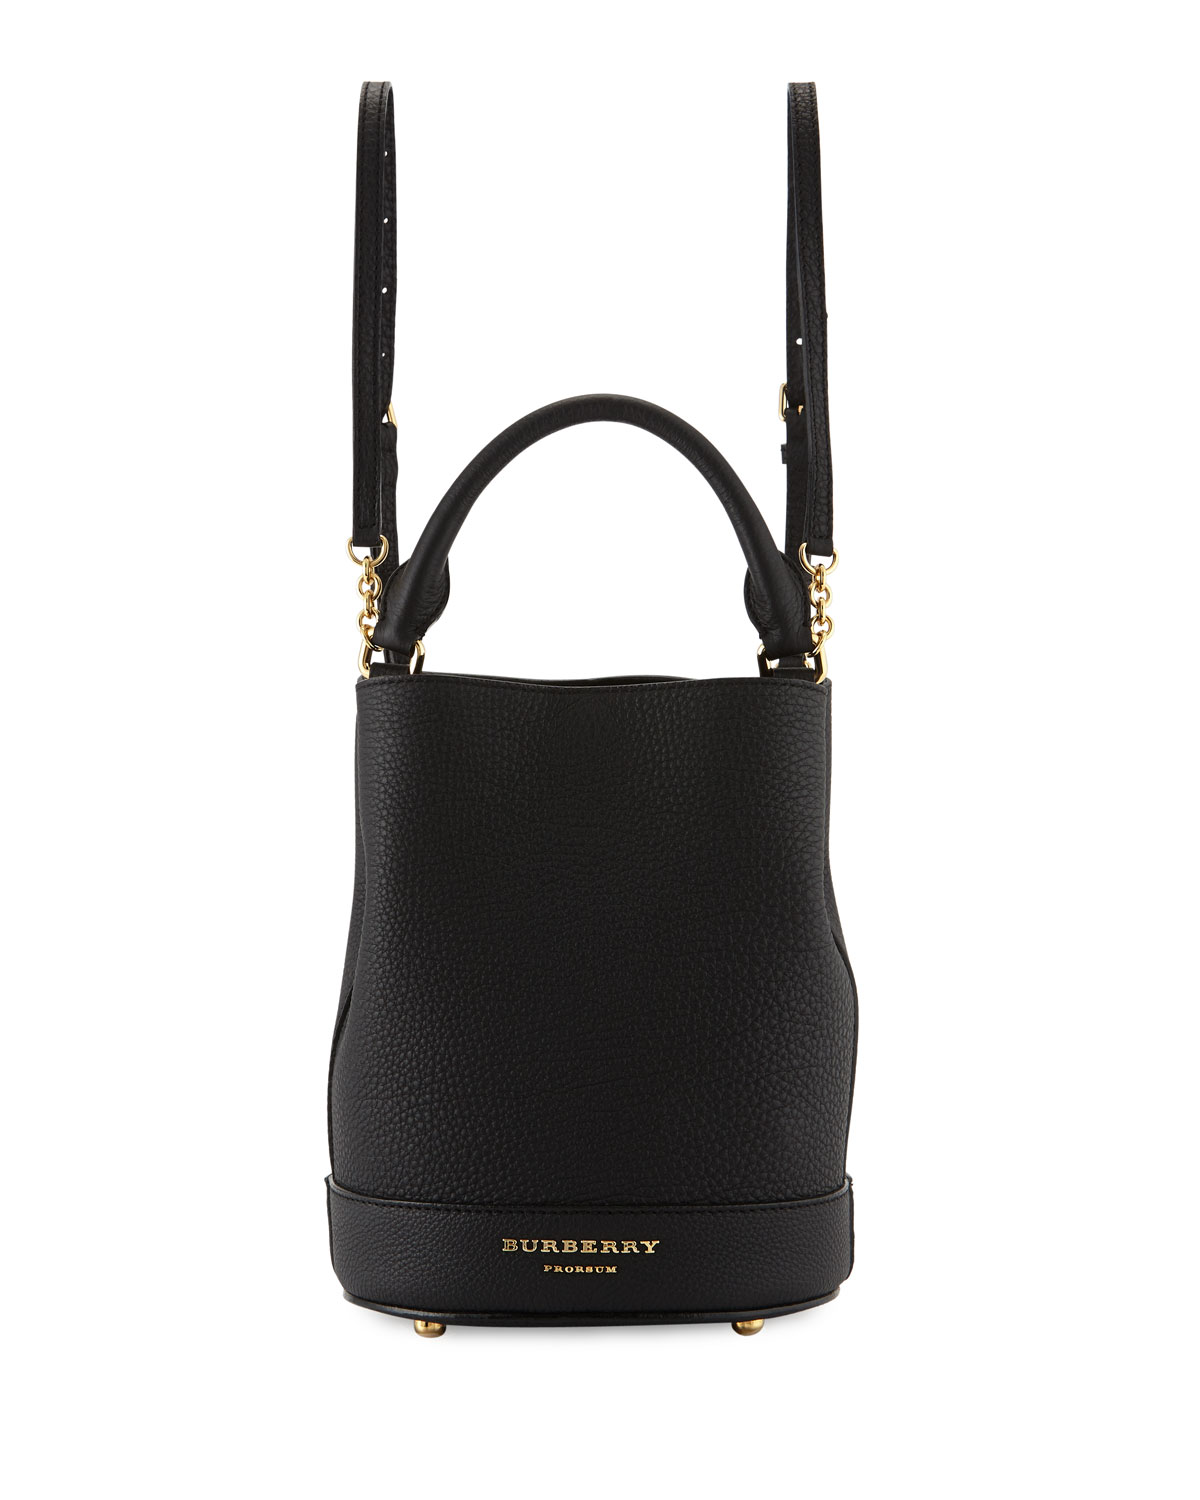 a7288142f4d2 Burberry Prorsum Small Leather Bucket Backpack Bag